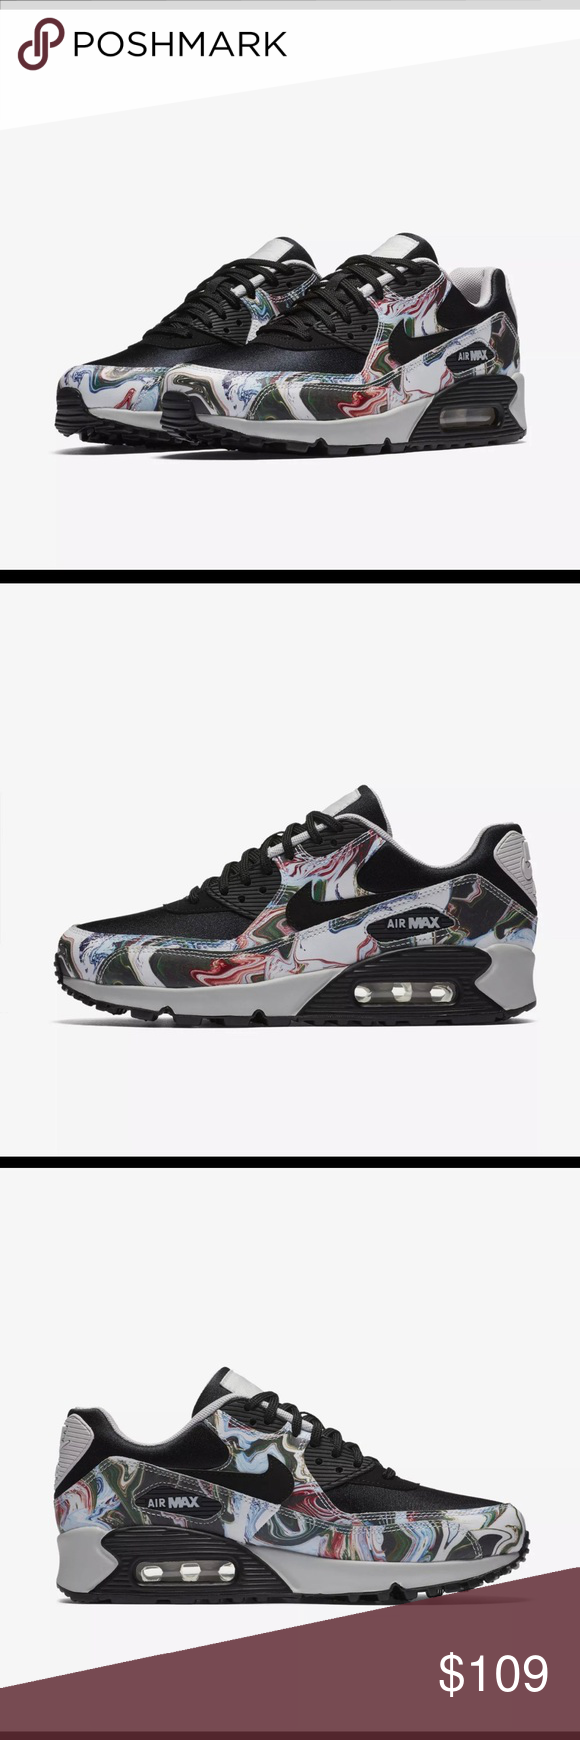 Nike Air Max 90 Marble Shoes -Style  AO1521 001 - New without Box. Women s Nike  Air Max 90 Marble Shoes -Style  AO1521 001 -Size 5 Nike Shoes Sneakers d061a8464